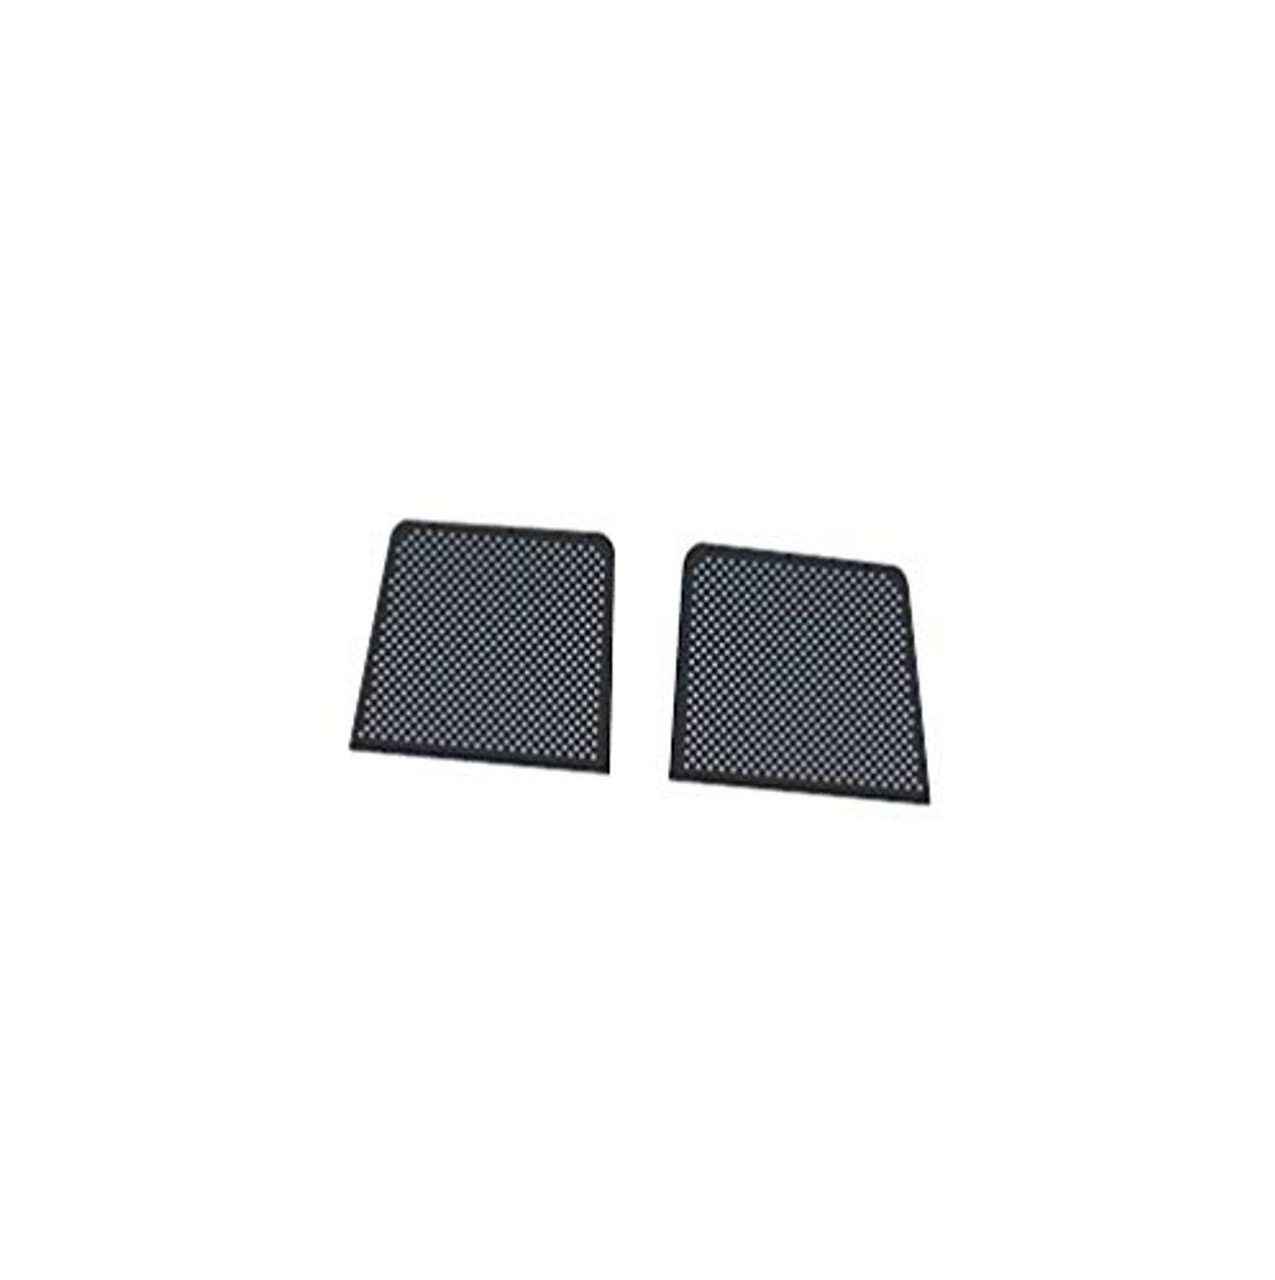 MESH Window Guards - Tahoe 2015+, PREC. P/N: WG-1TAH2 | 0309X926IOY